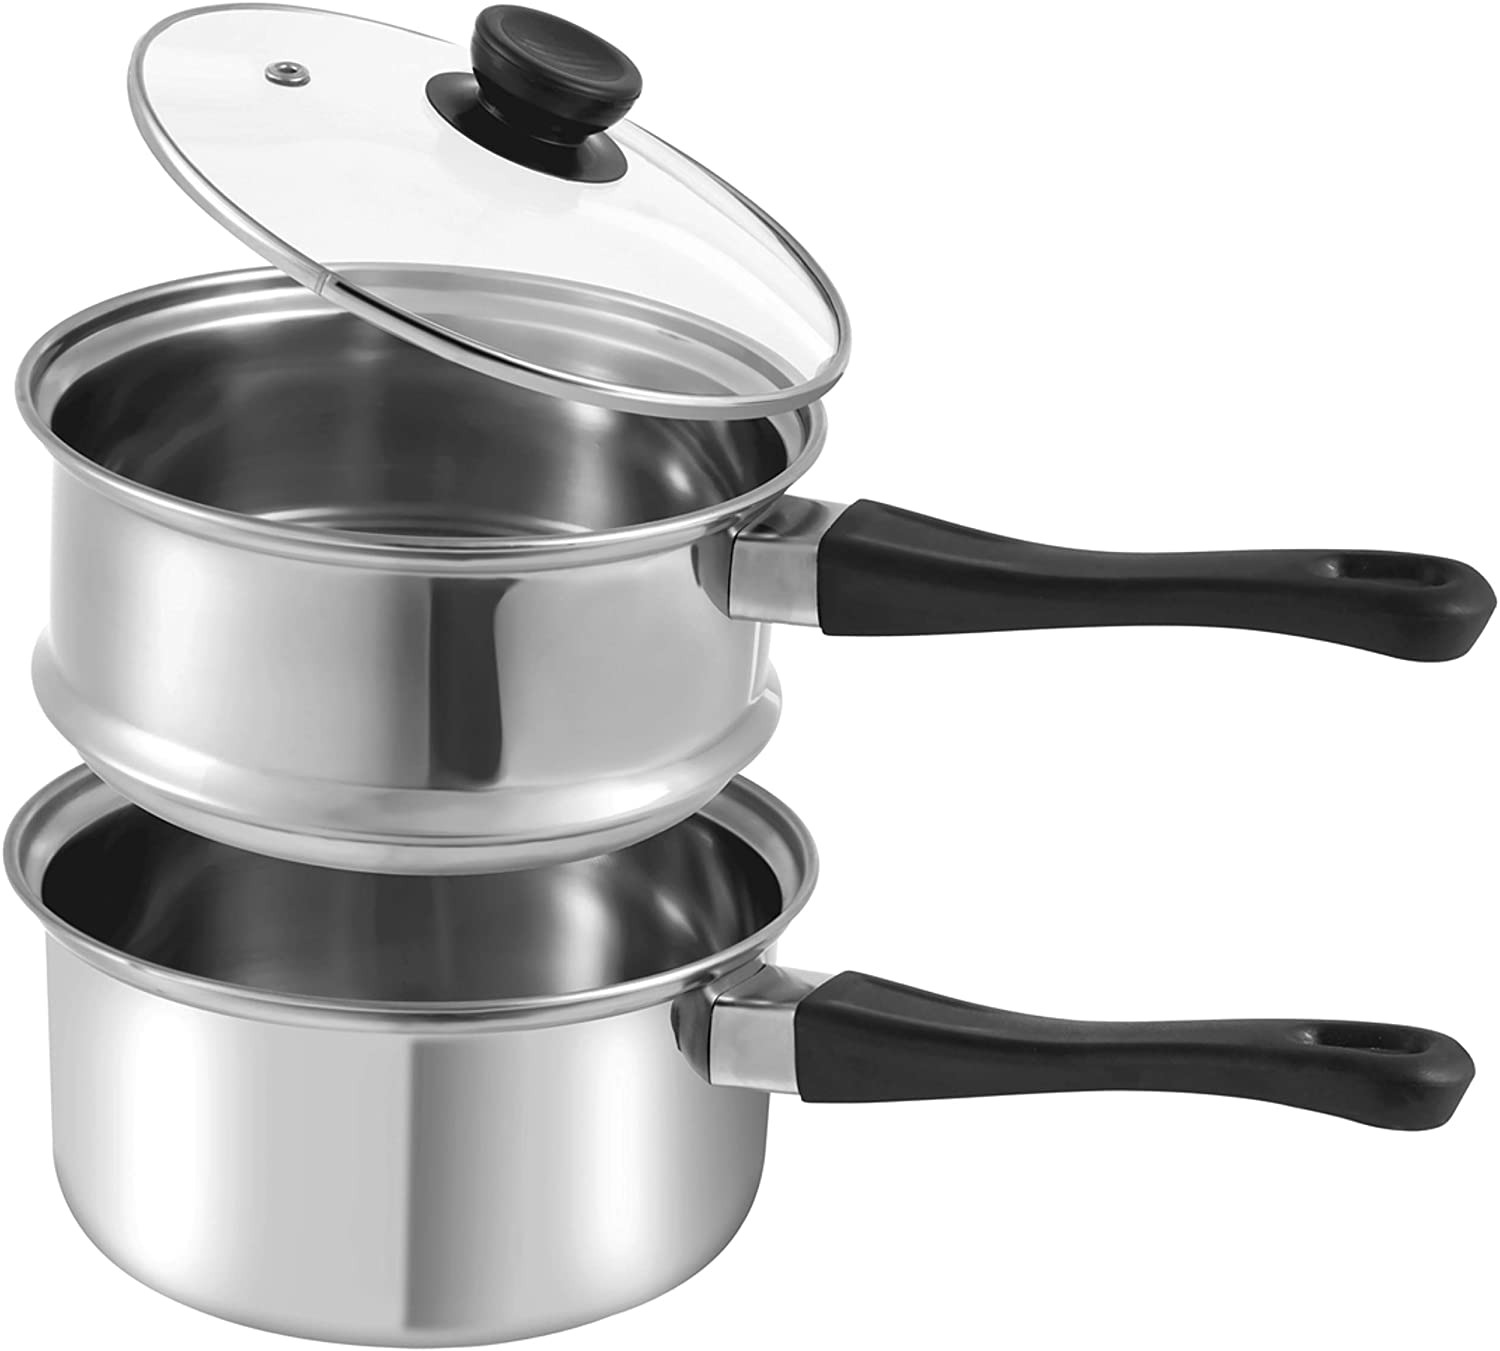 La Patisserie 1.5 Quart Double Boiler w/ 4 Chocolate Molds - 3 Piece Stainless Steel Double Boiler Pot for Melting Chocolate, Candle Making, Soap Melting and Wax Melting